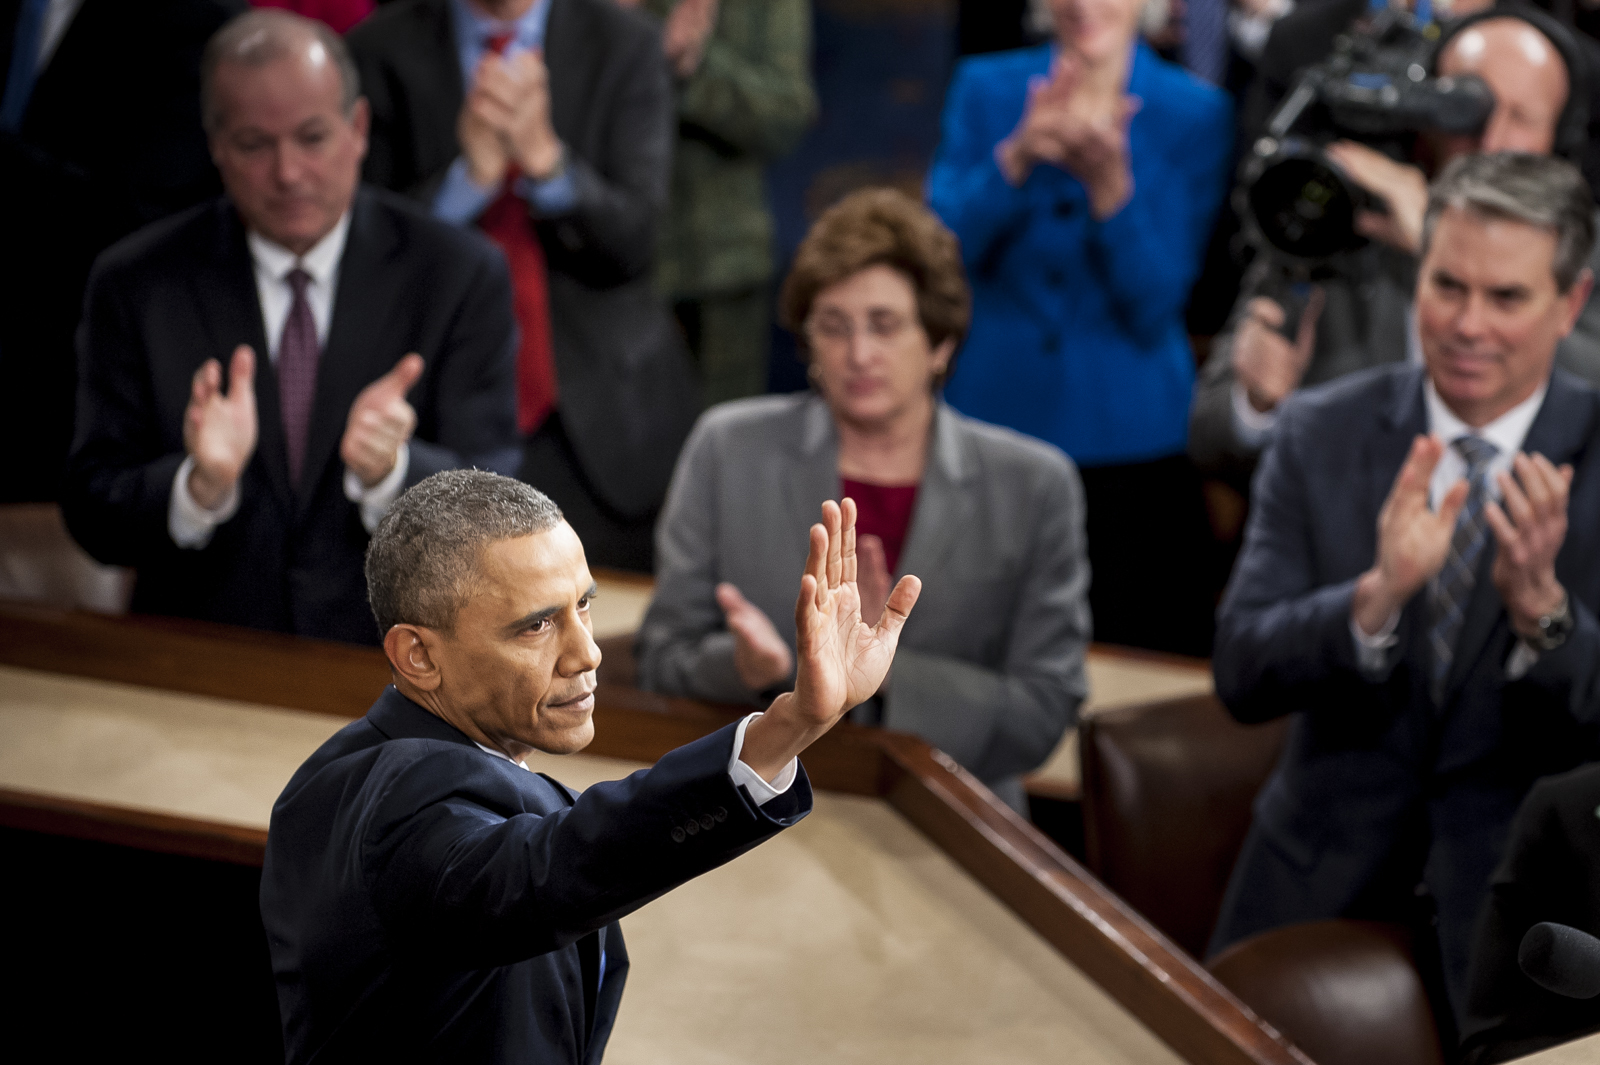 U.S. President Barack Obama waves to the gallery following his State of the Union address to a joint session of Congress at the Capitol in Washington, D.C., U.S., on Tuesday, Jan. 28, 2014. Photographer: Pete Marovich/Bloomberg